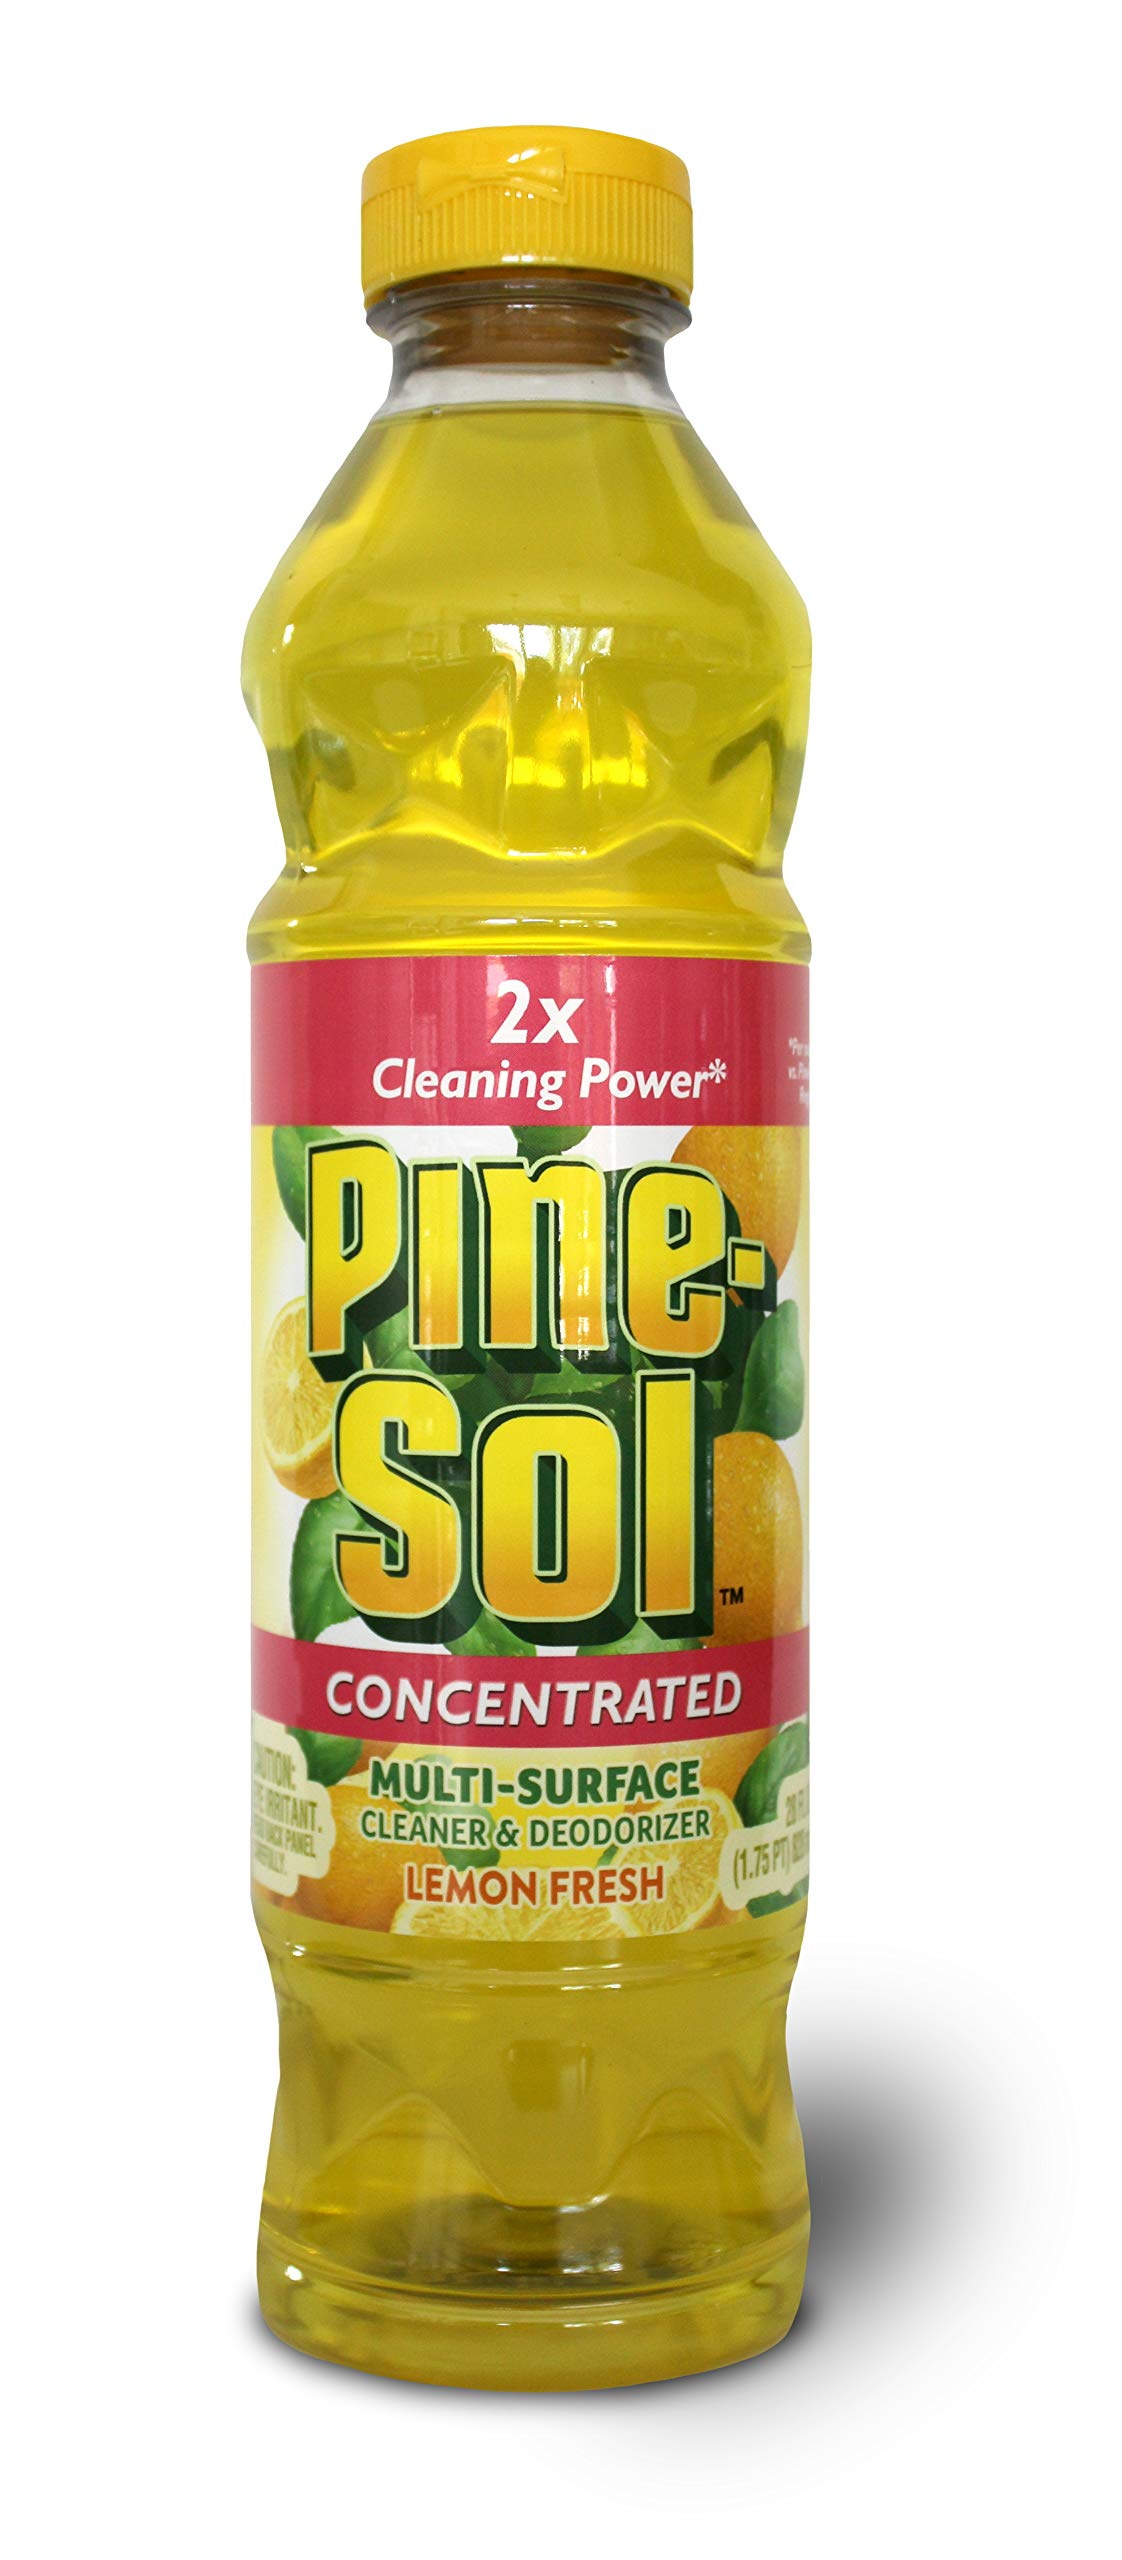 Pine Sol Concentrated Multi-Surface Cleaner and Deodorizer, Lemon Fresh Scent, 2 Count, 56 ounces Total